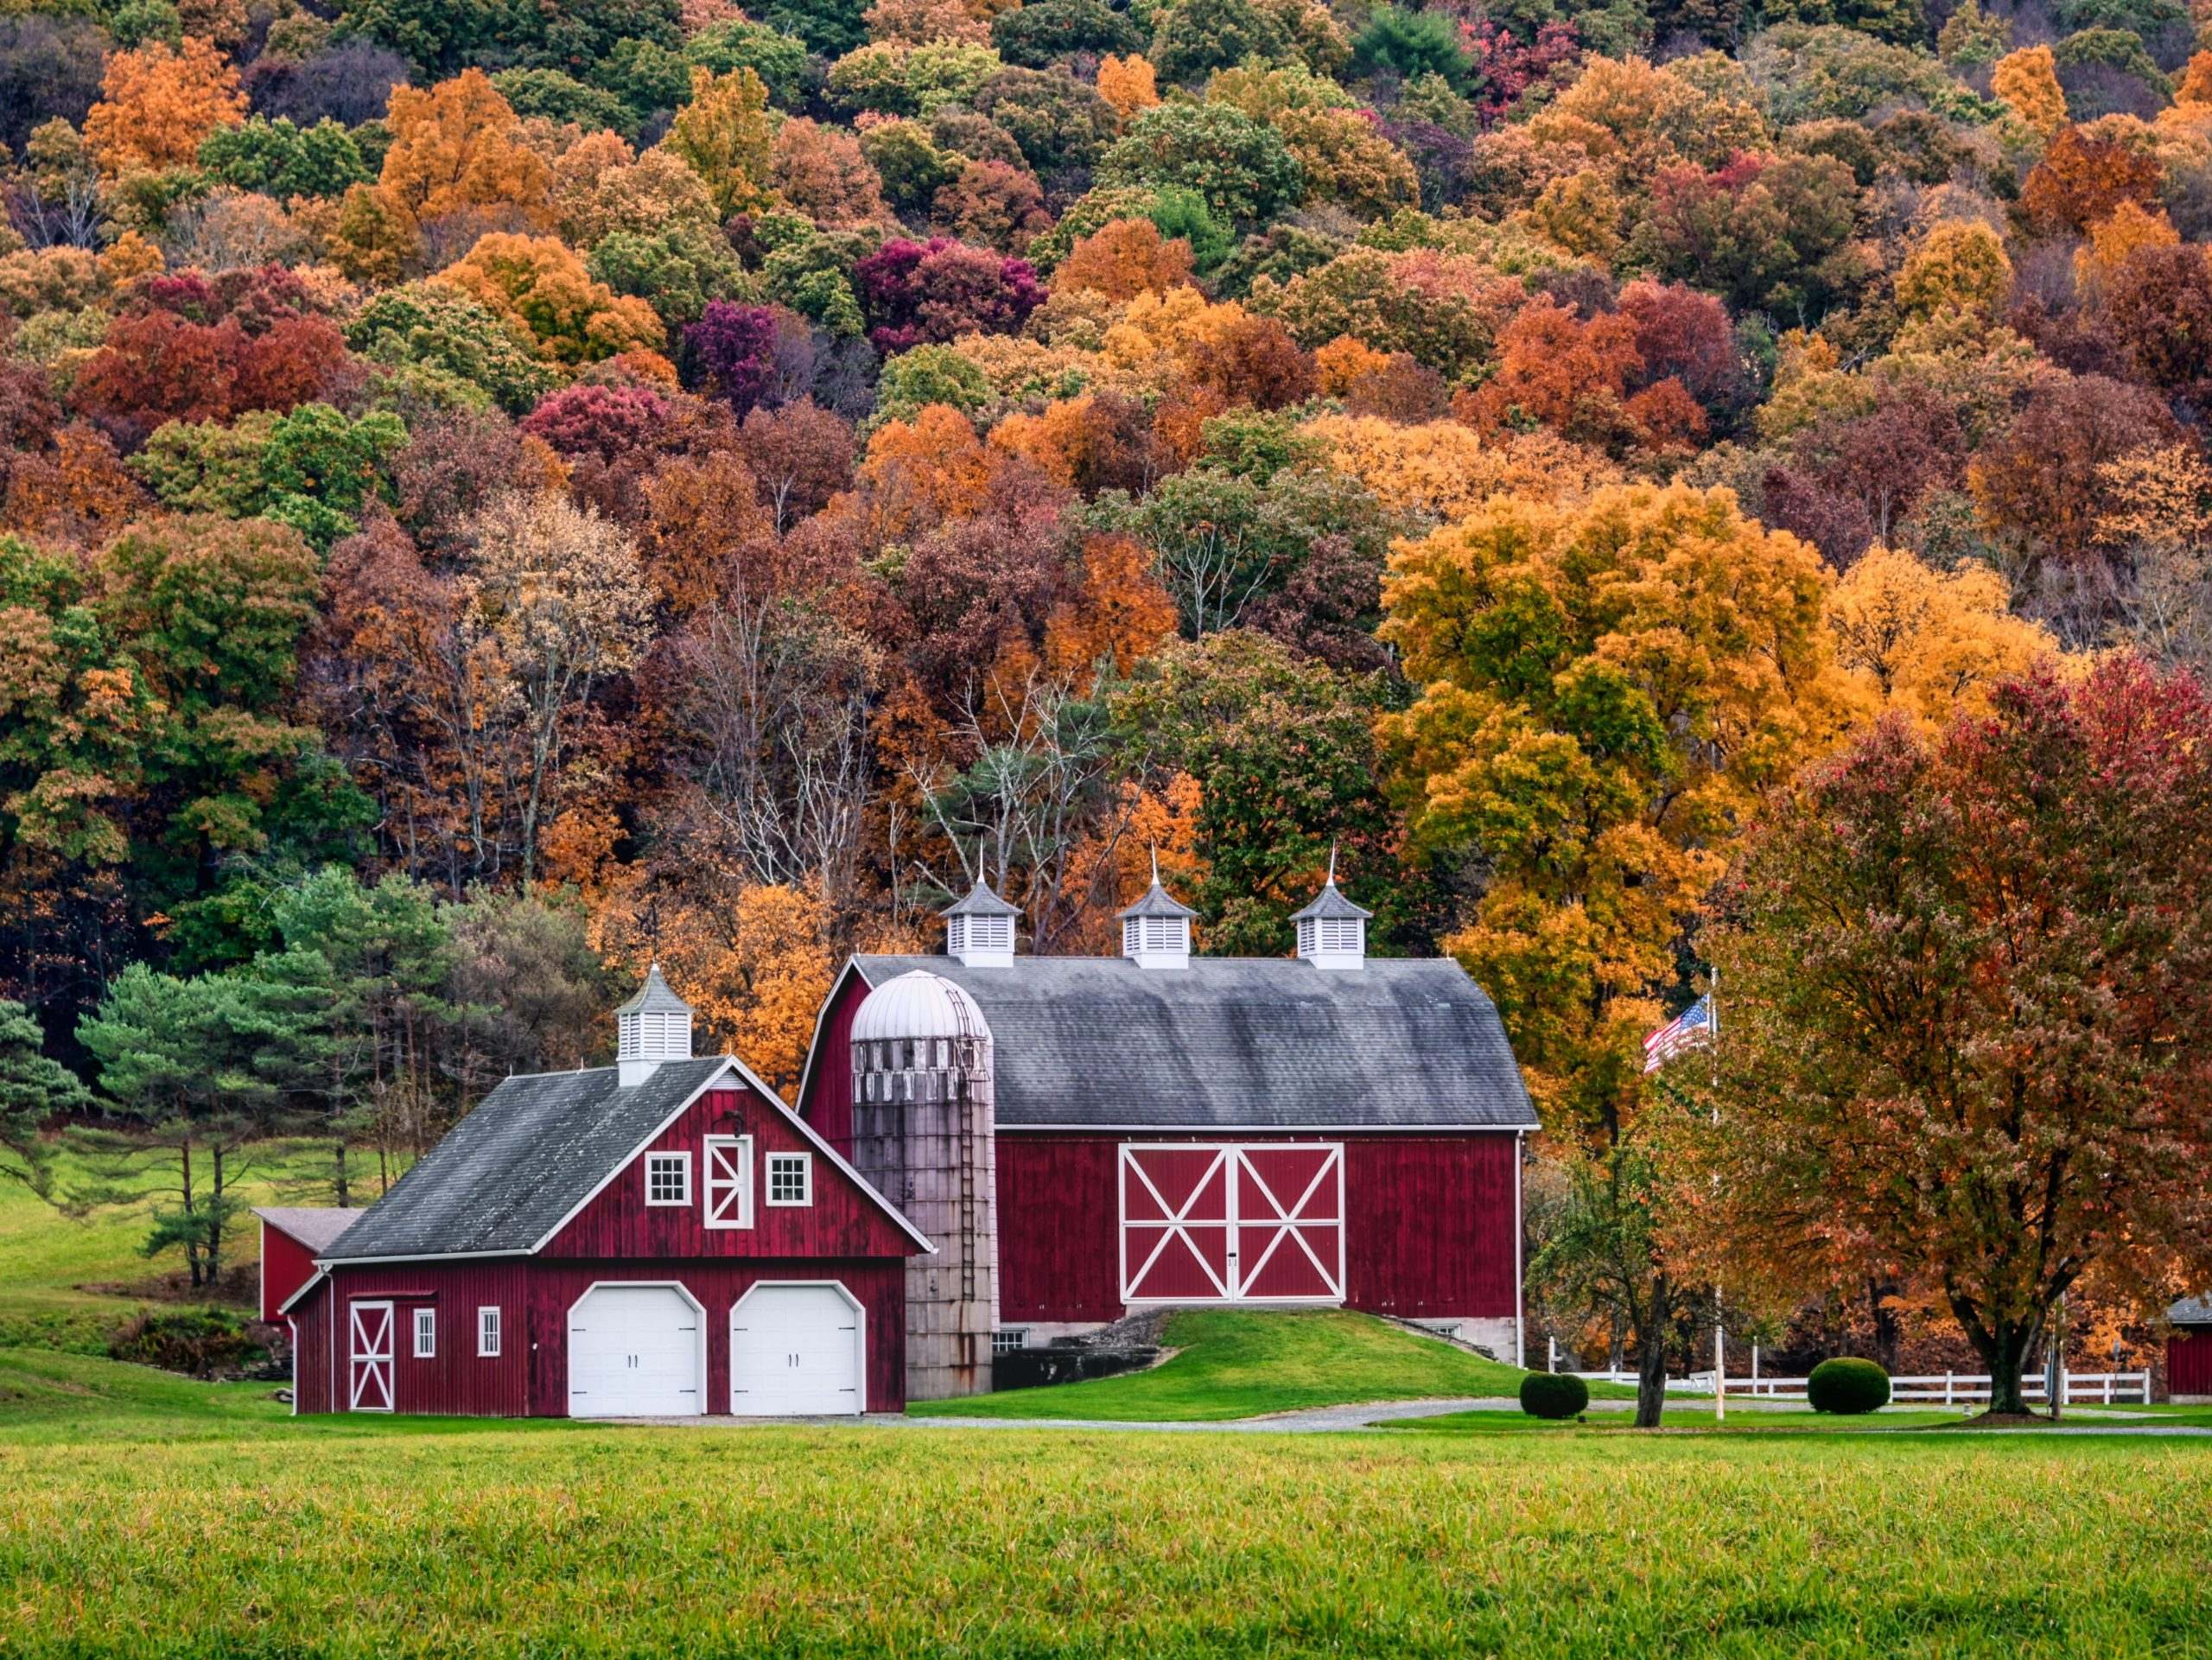 Red traditional barn house surrounded by orange and red trees in The Poconos